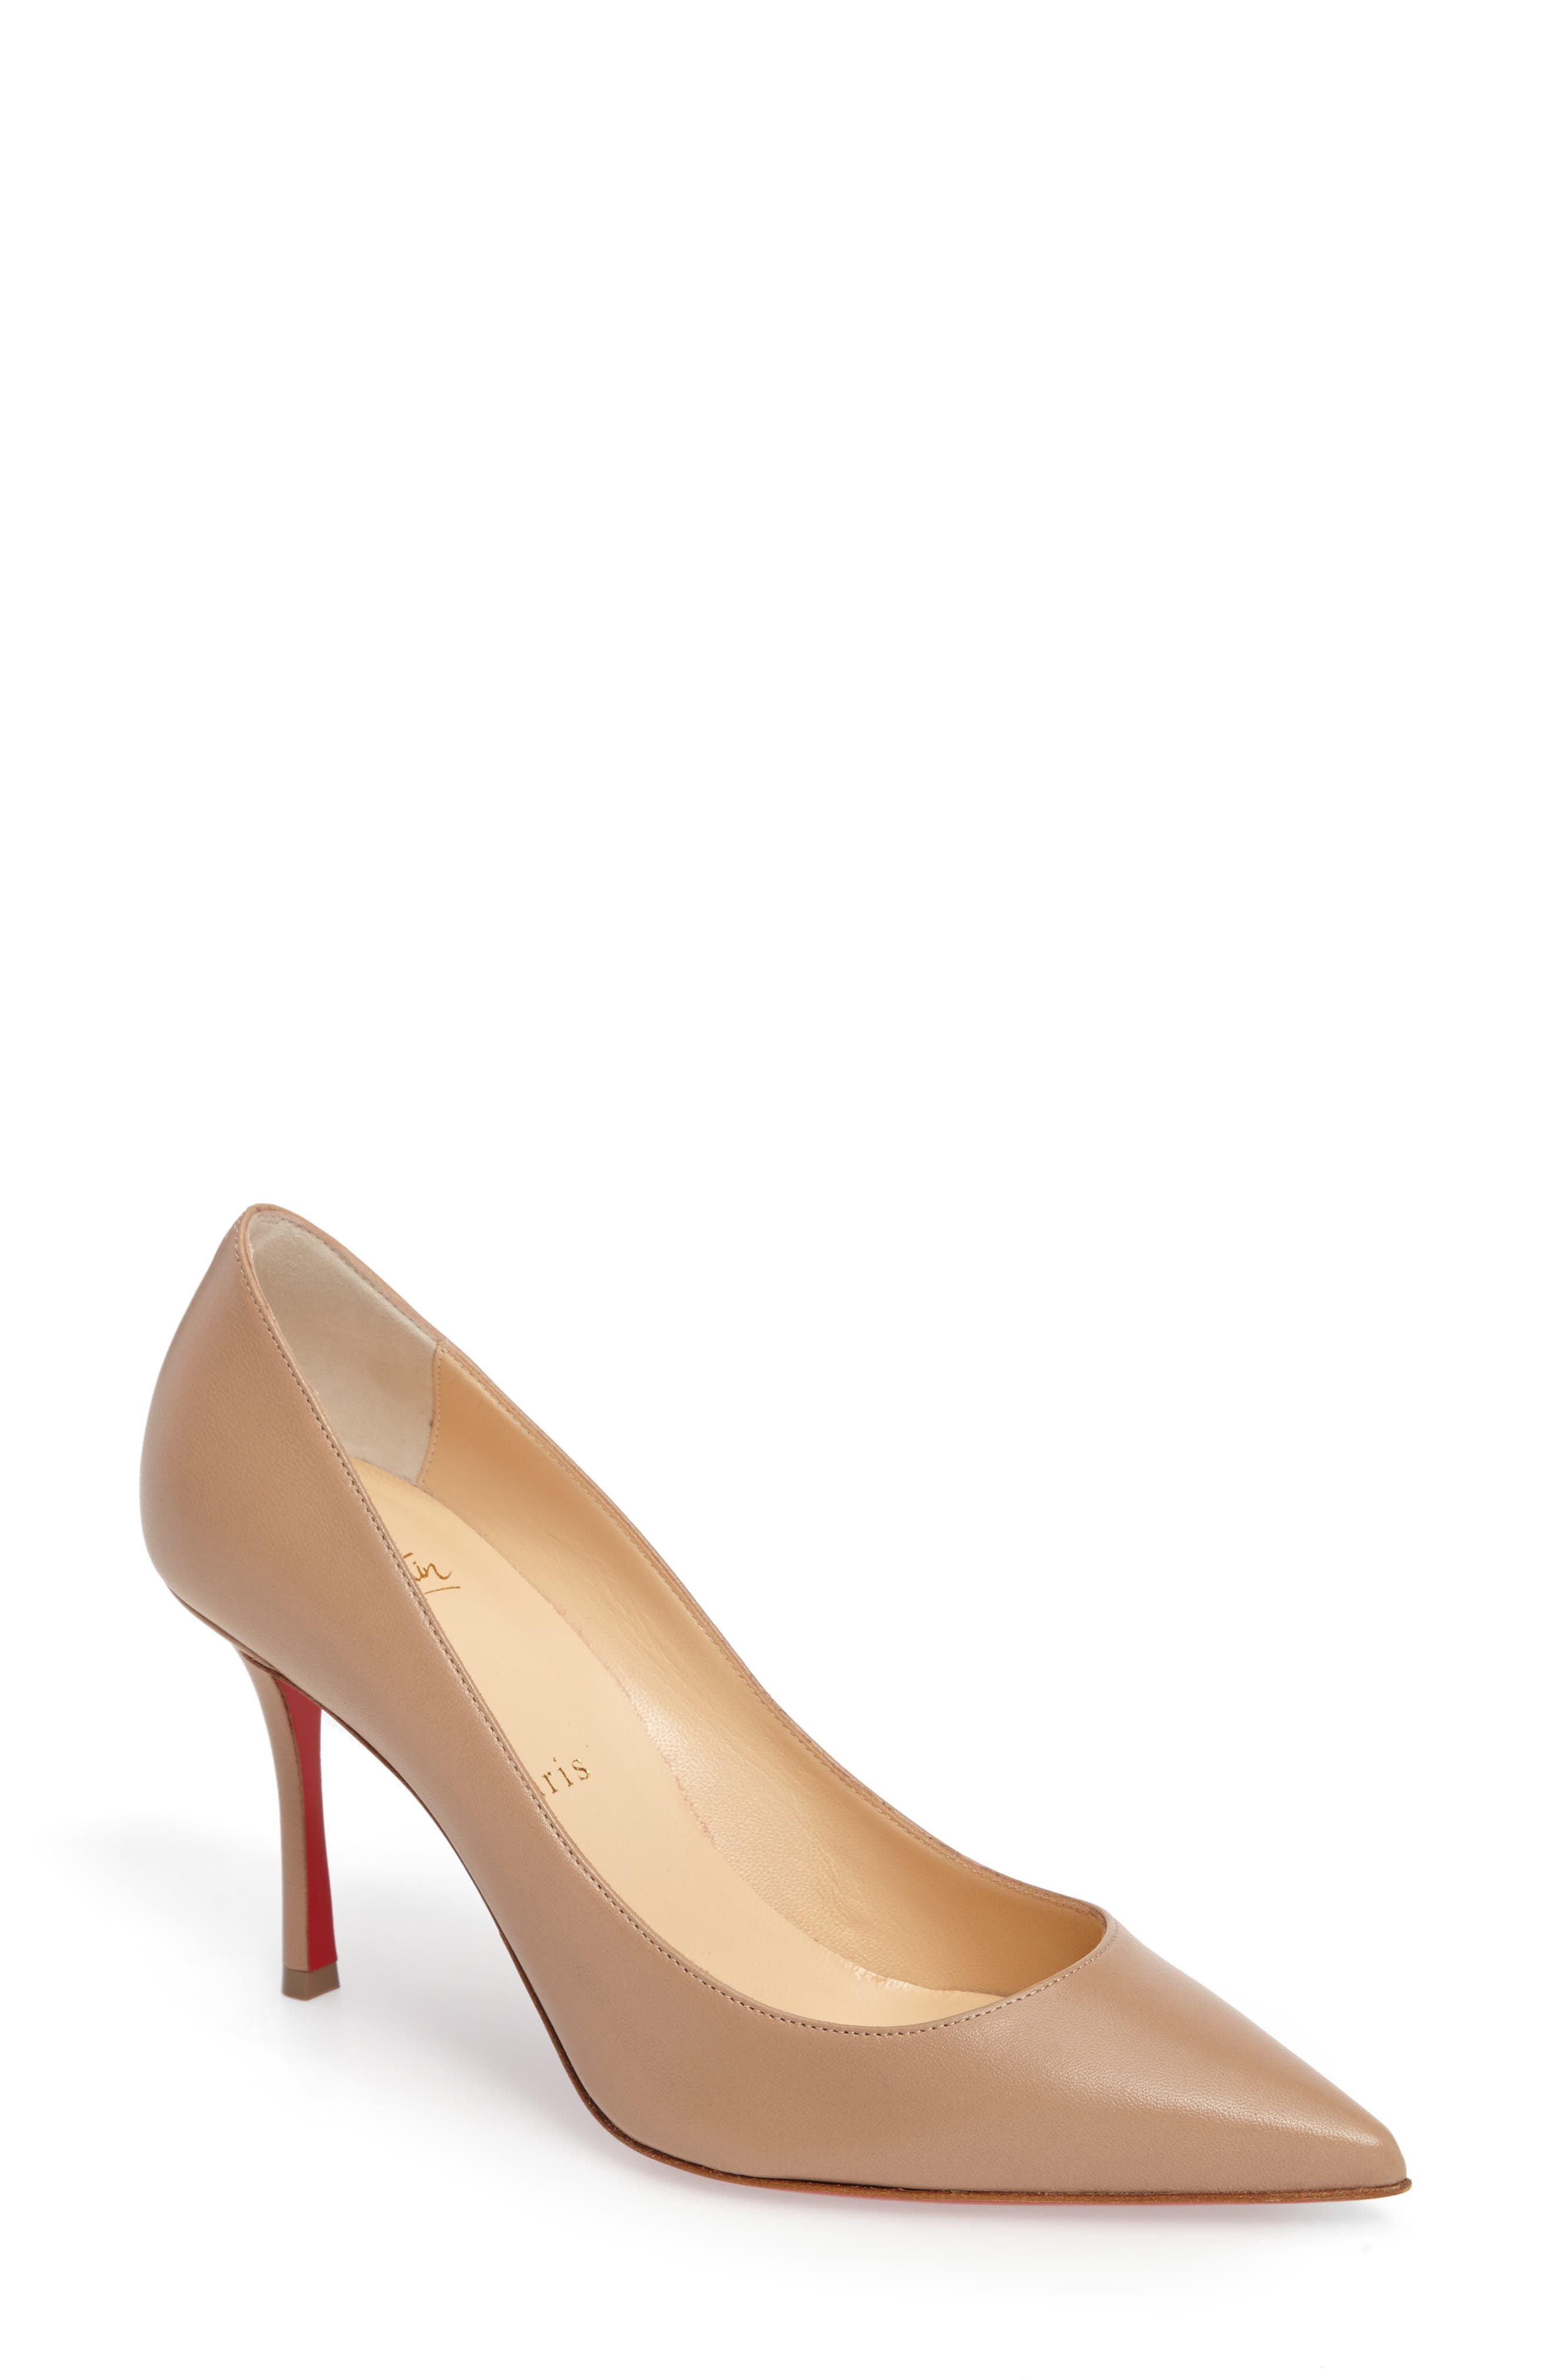 Alternate Image 1 Selected - Christian Louboutin Decoltish Pointy Toe Pump (Women)